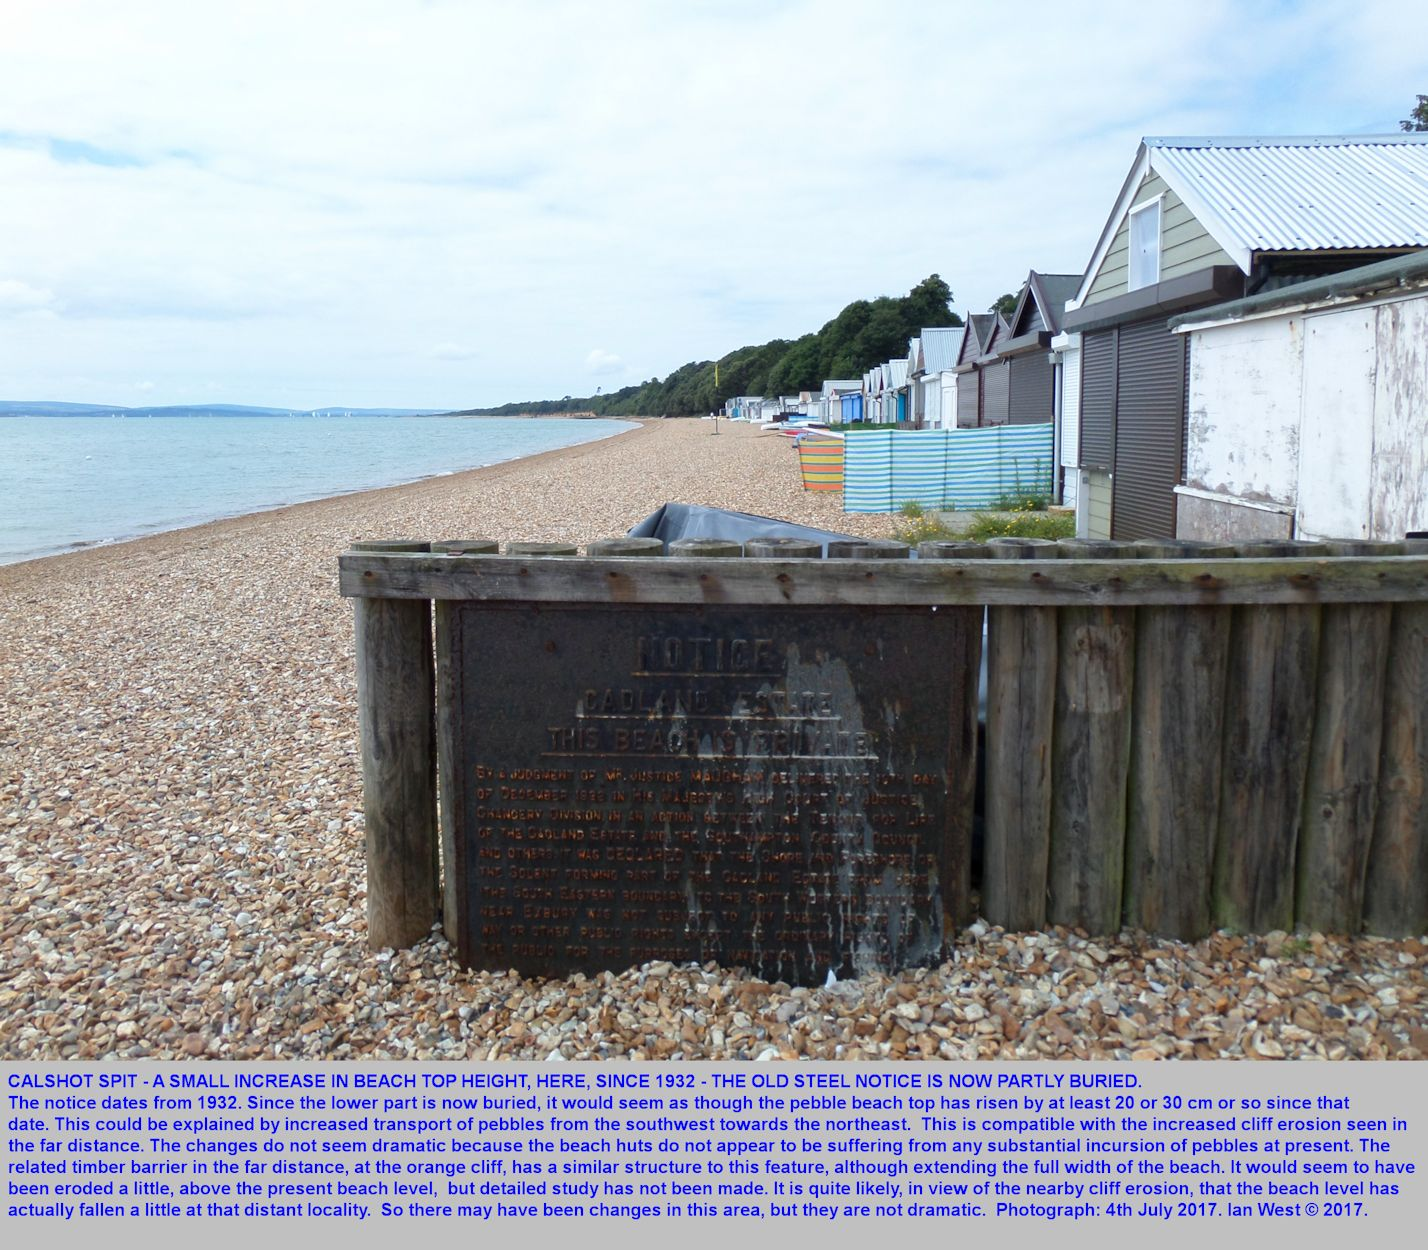 An old notice board indicates an increase in height of the beach, since 1931, southwestern, landward part of Calshot Spit, July 2017